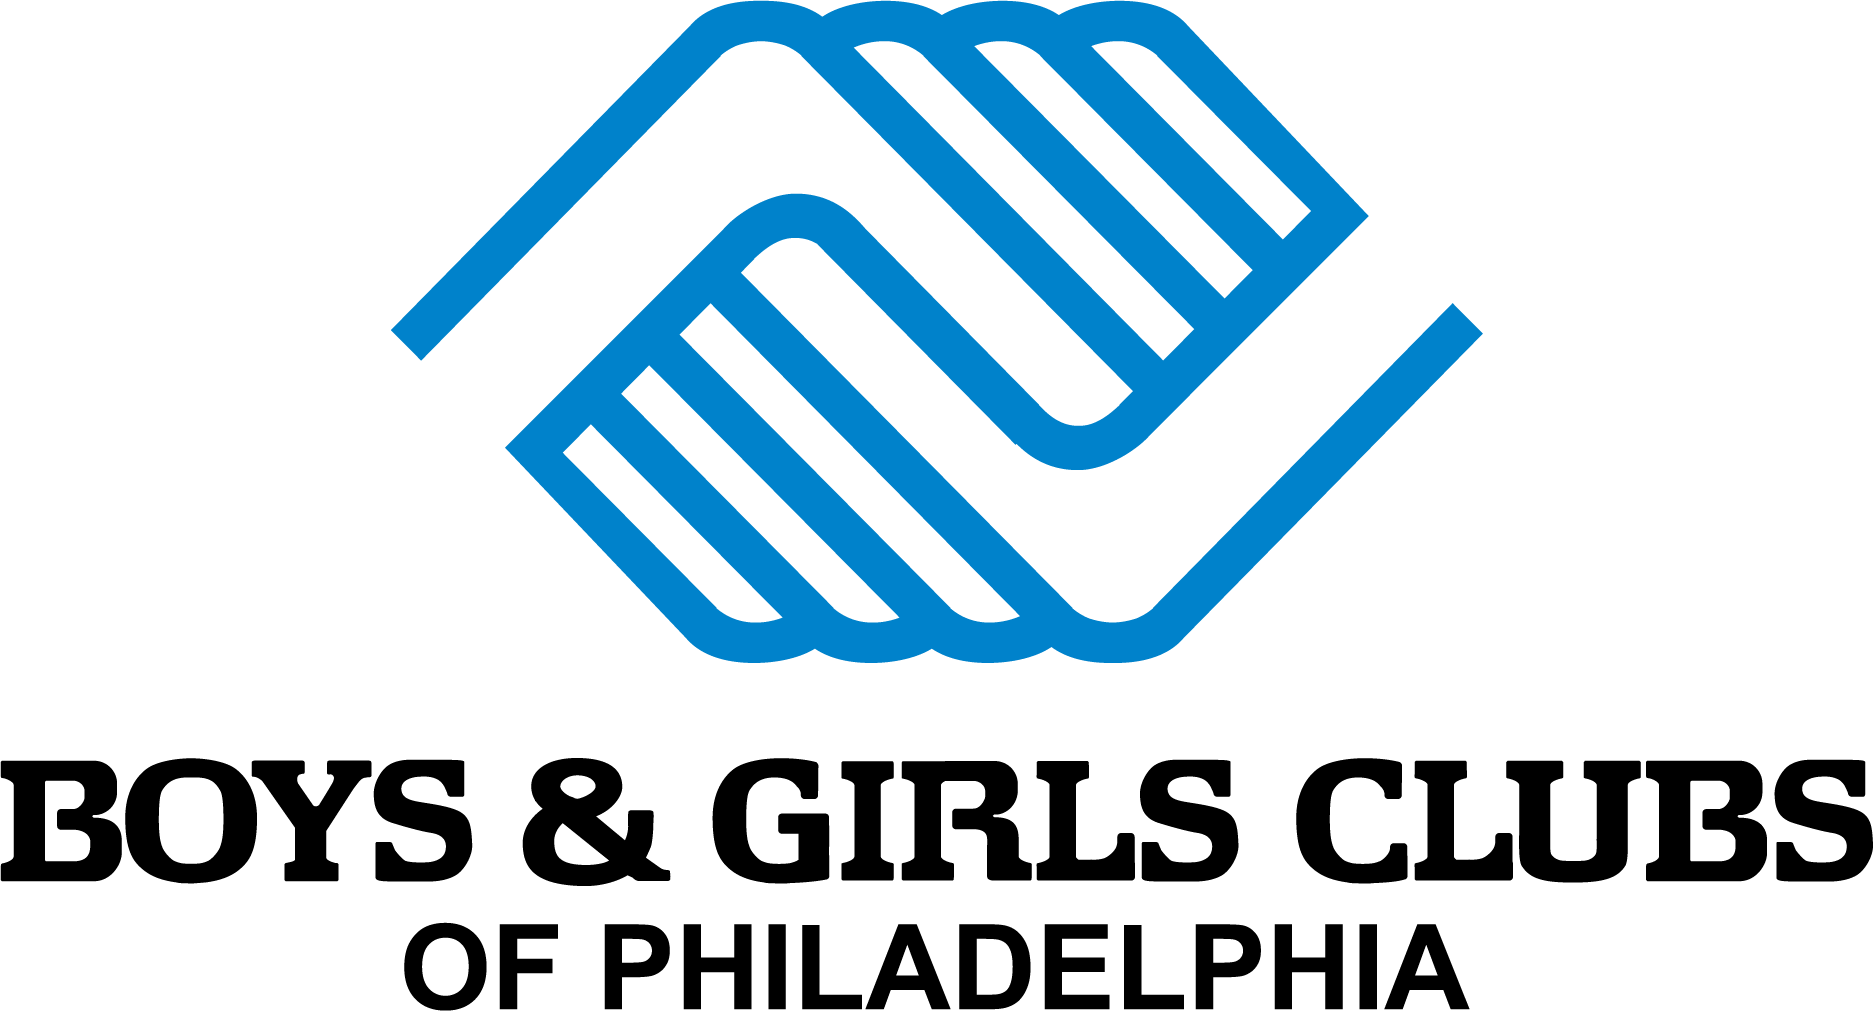 Boys and Girls Club of Philadelphia